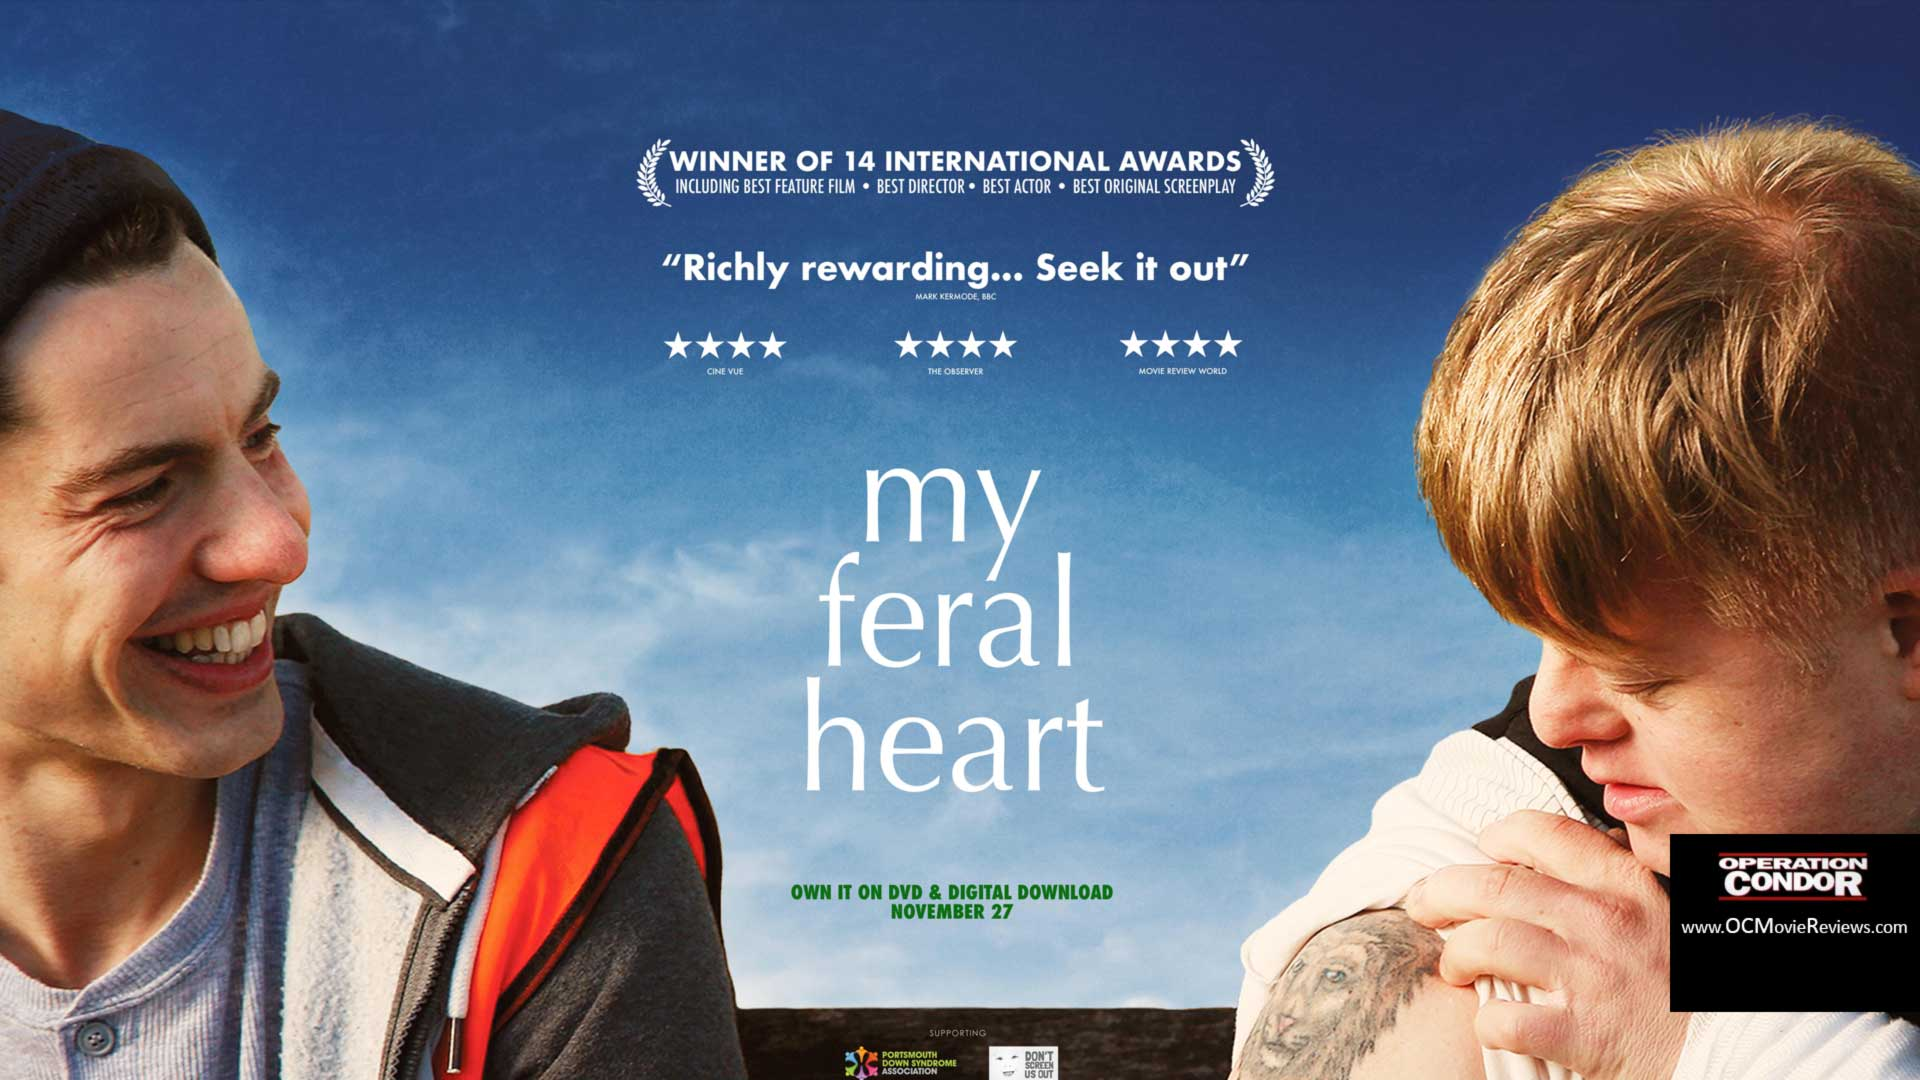 My Feral Heart Review – A Beautiful Tale Of Humanness - OC Movie Reviews - Movie Reviews, Movie News, Documentary Reviews, Short Films, Short Film Reviews, Trailers, Movie Trailers, Interviews, film reviews, film news, hollywood, indie films, documentaries